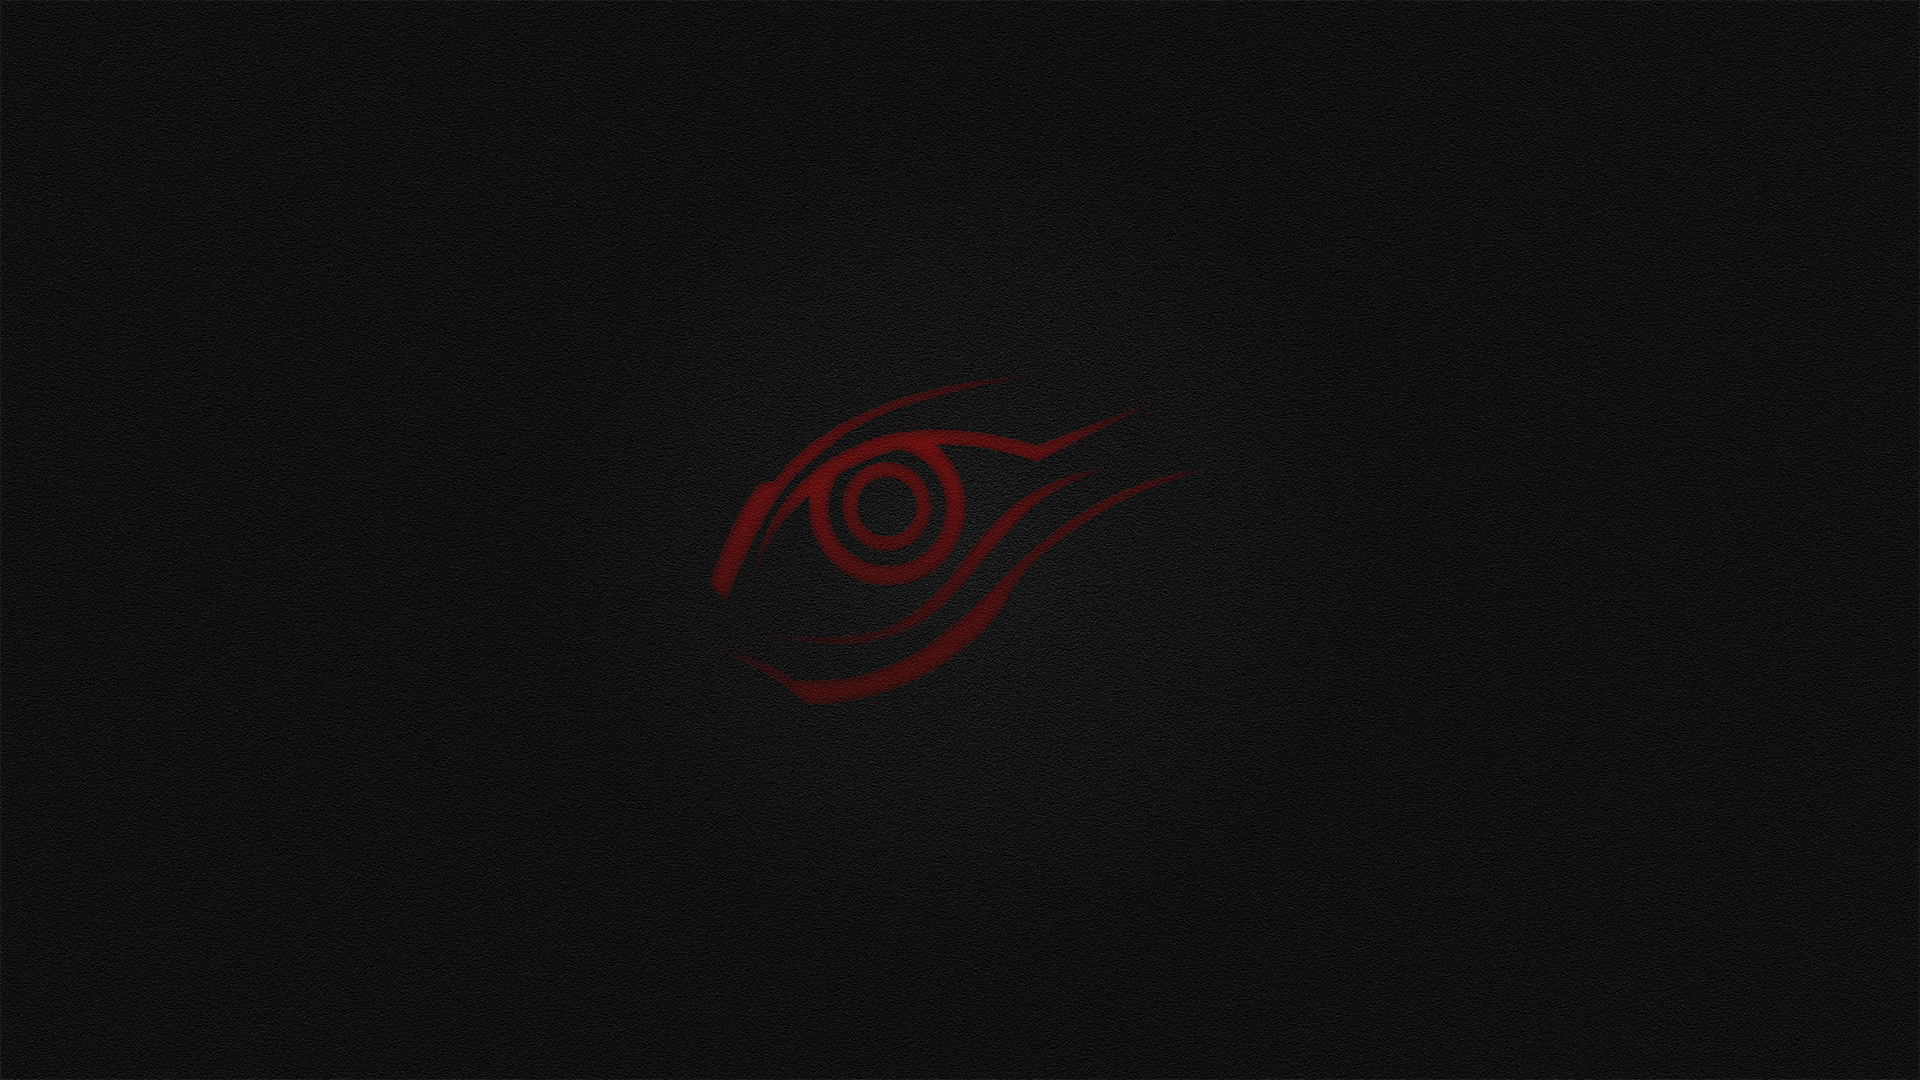 Alienware Laptop furthermore Watch in addition Dell Xps Wallpaper 2048x2048 6be7957d074175cf71d923e47323f8d6 likewise Abstract Painting Wallpaper additionally High Definition Dell Wallpapers For Free Download. on dell xps desktop pc